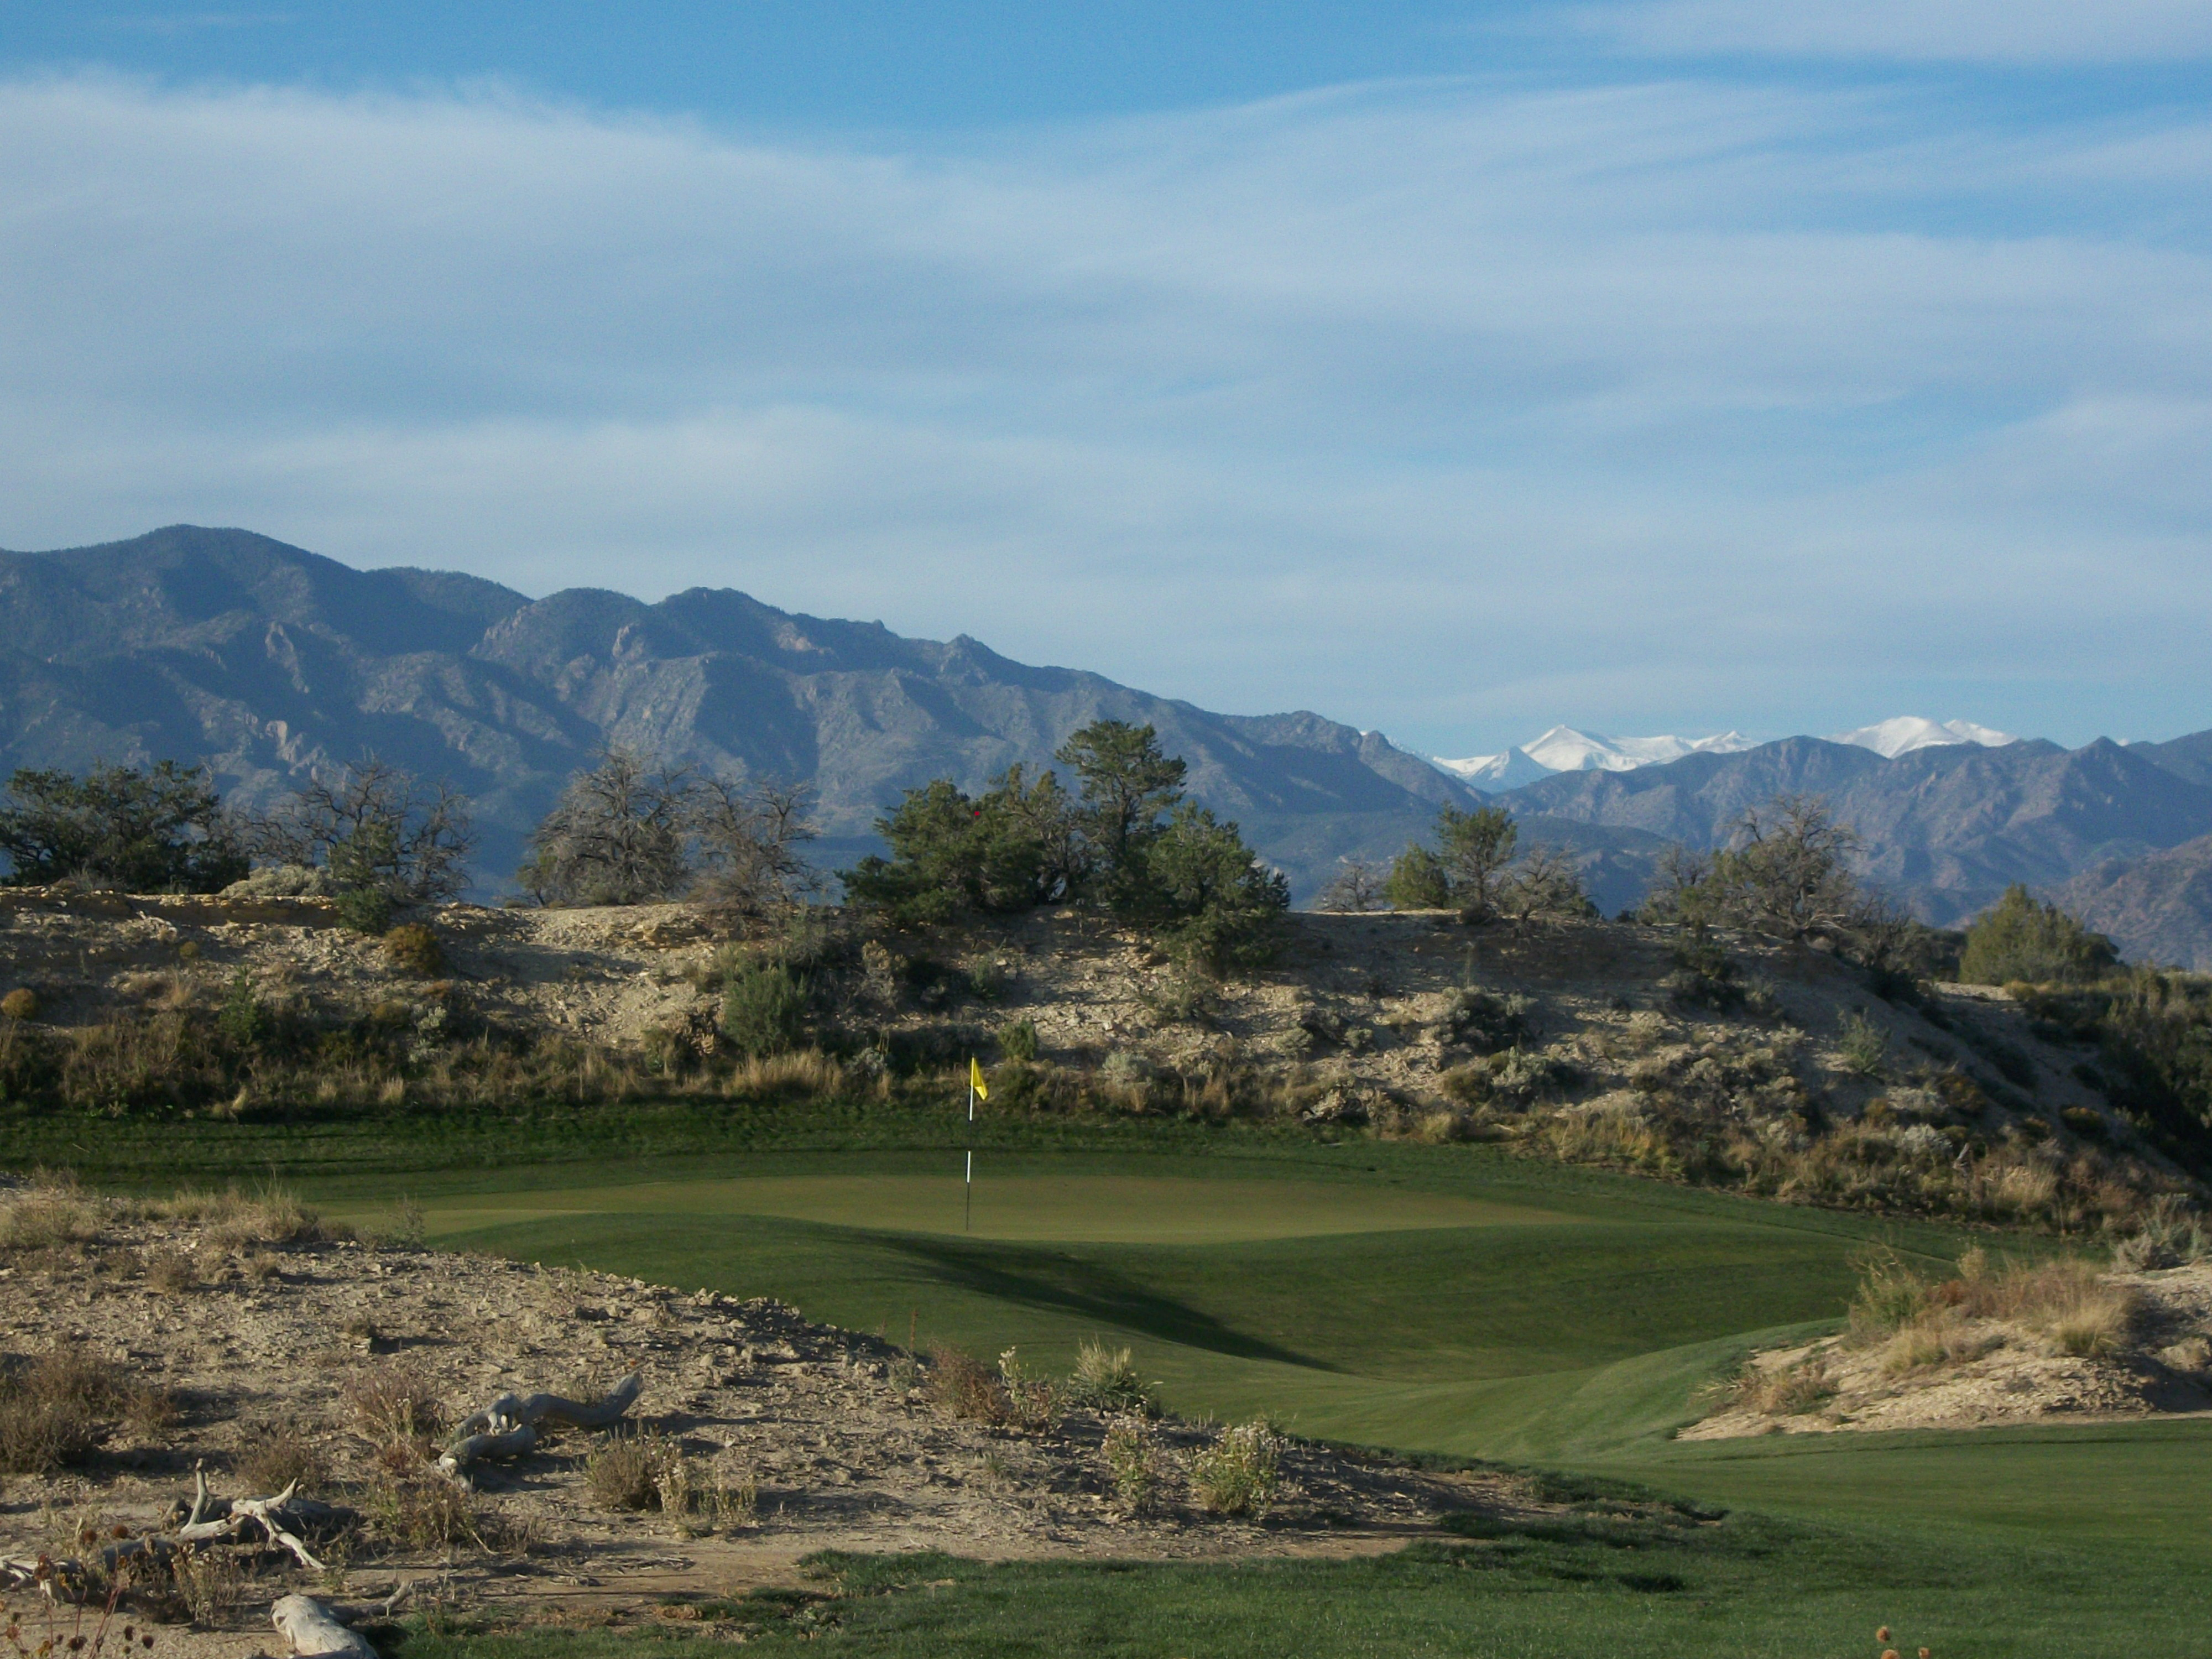 The 18th hole at Four Mile Ranch